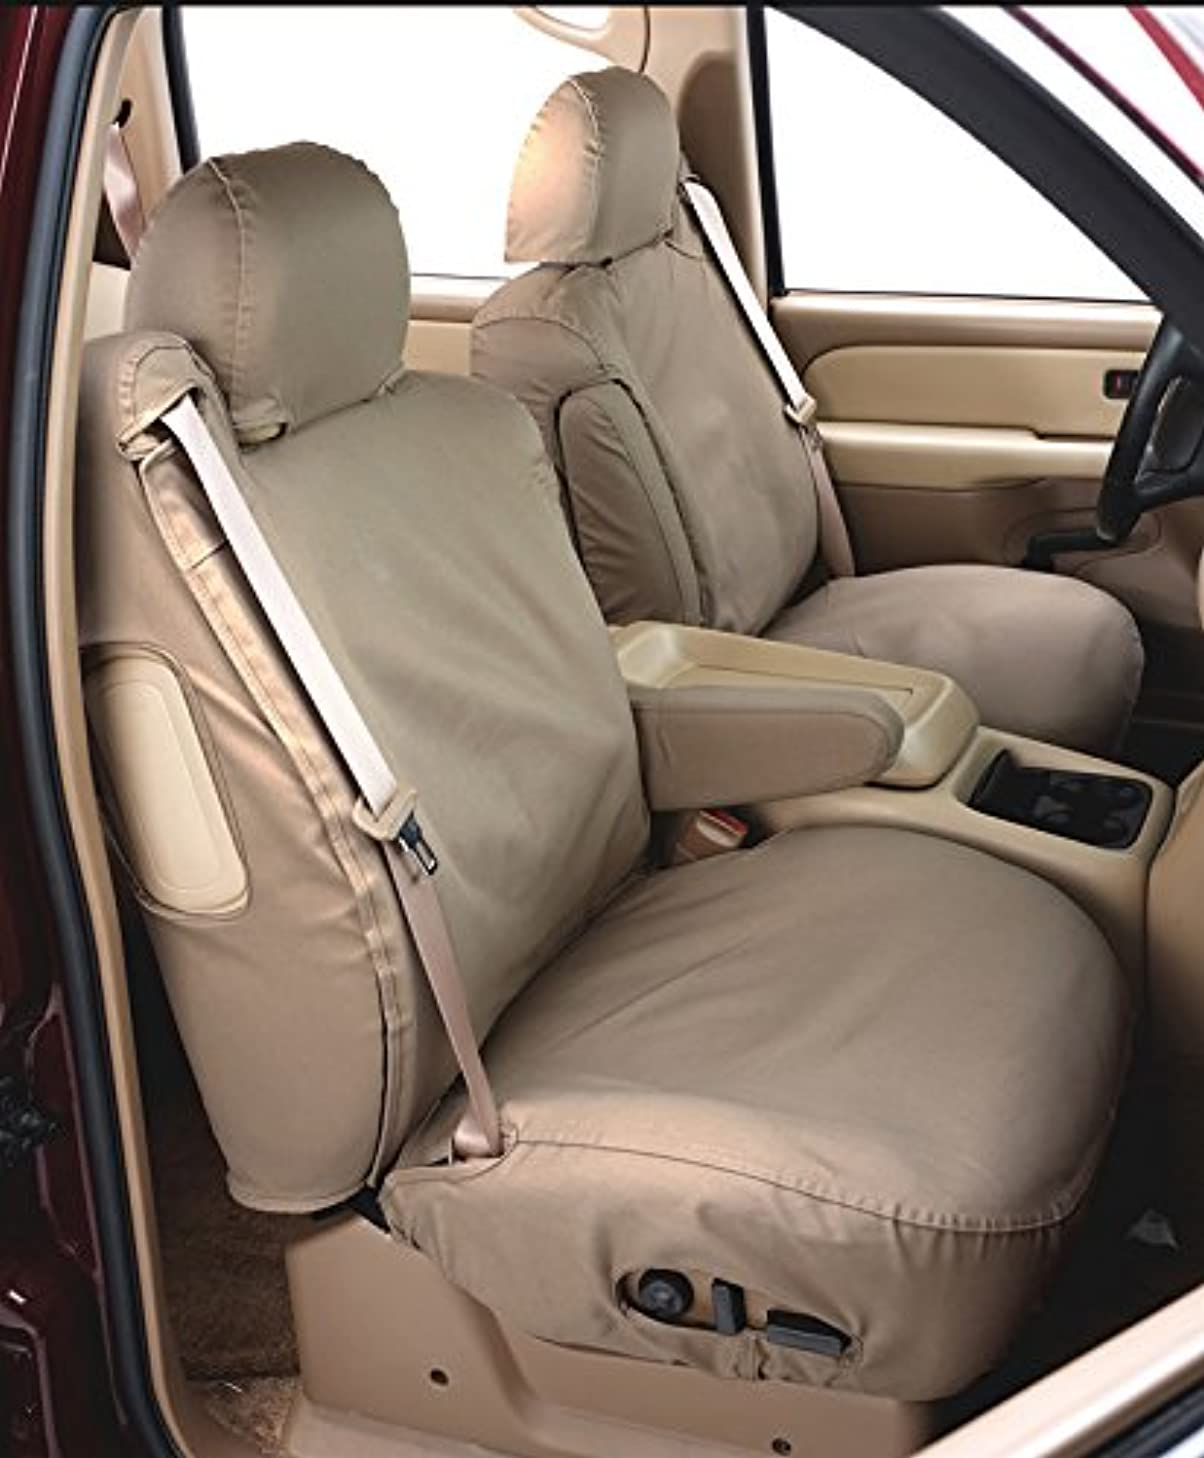 Covercraft SeatSaver Second Row Custom Fit Seat Cover for Select Jeep Grand Cherokee Models - Waterproof (Taupe)